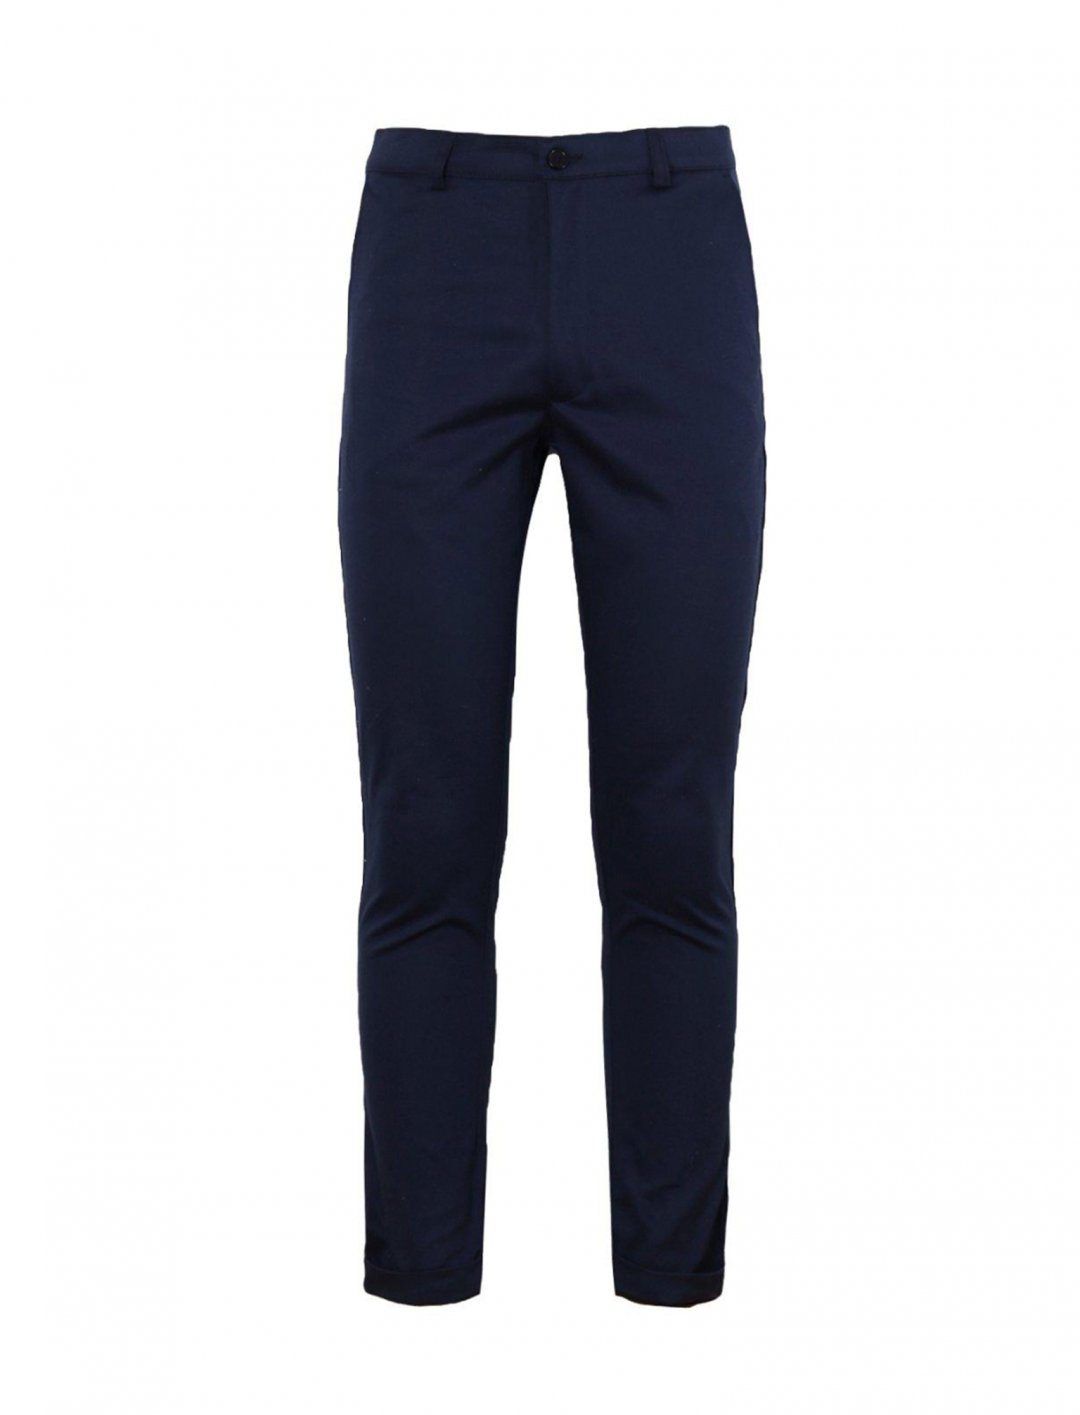 "BoohooMAN Navy Chino Trousers {""id"":5,""product_section_id"":1,""name"":""Clothing"",""order"":5} BoohooMAN"